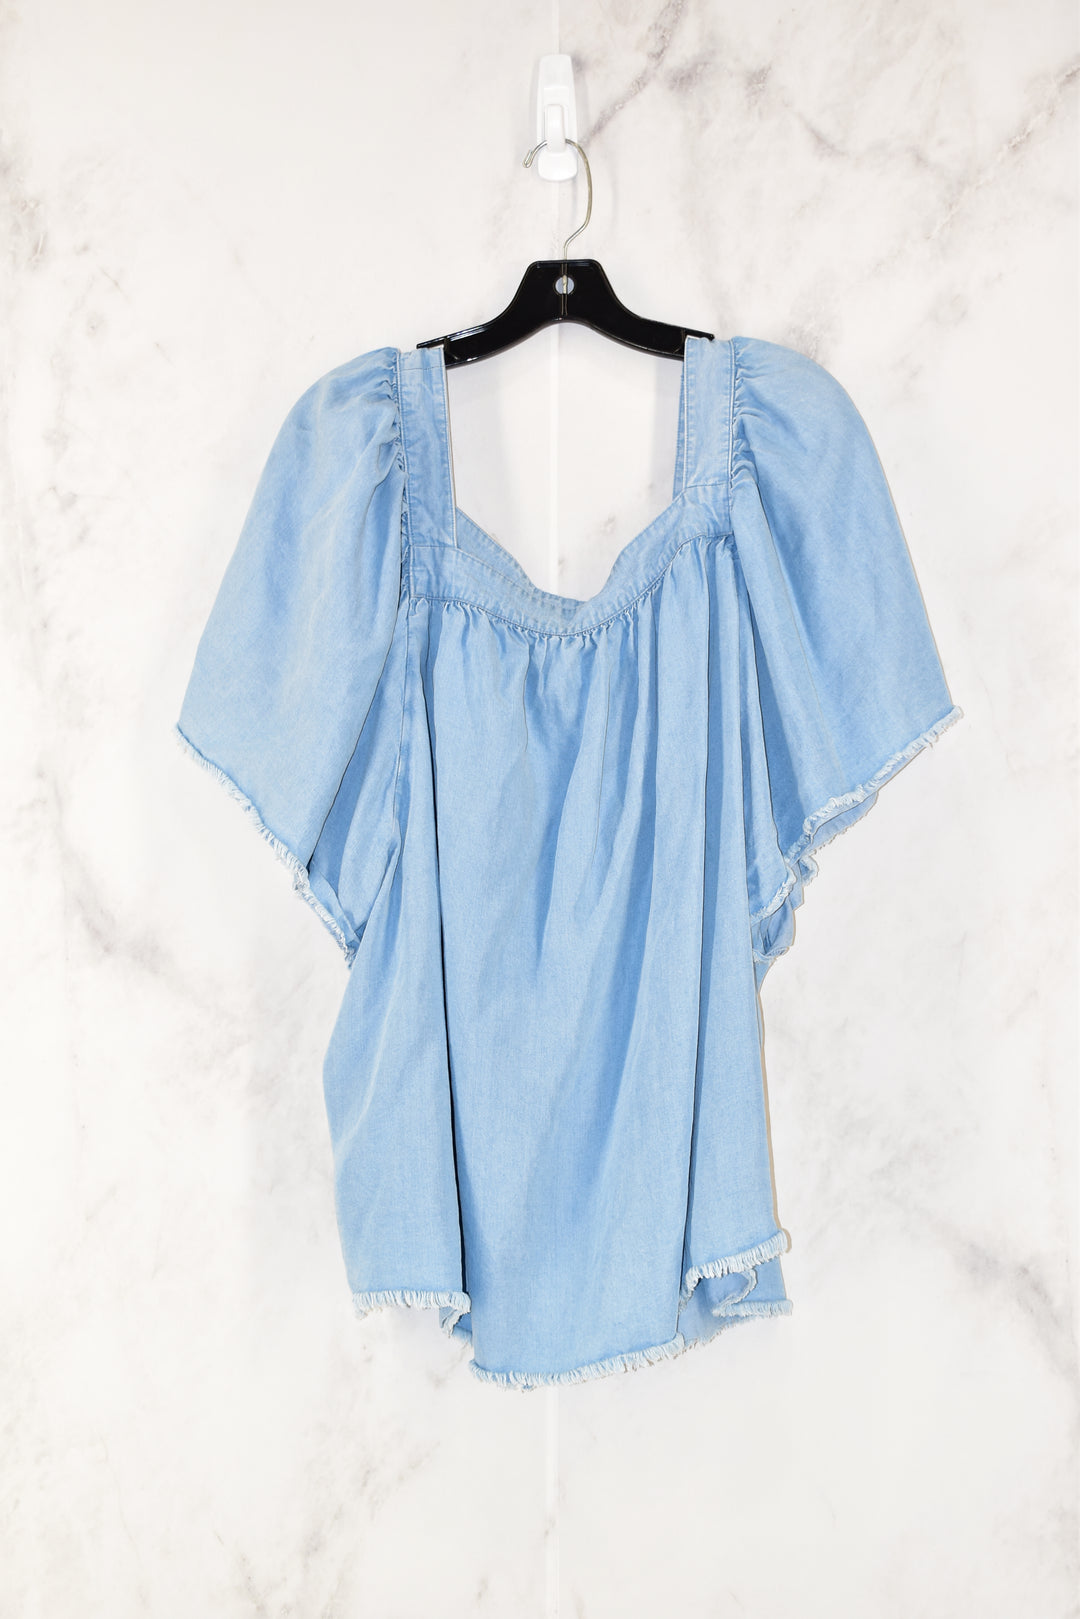 Primary Photo - BRAND: ANA<BR>STYLE: TOP SHORT SLEEVE<BR>COLOR: DENIM<BR>SIZE: 3X<BR>SKU: 186-186200-321